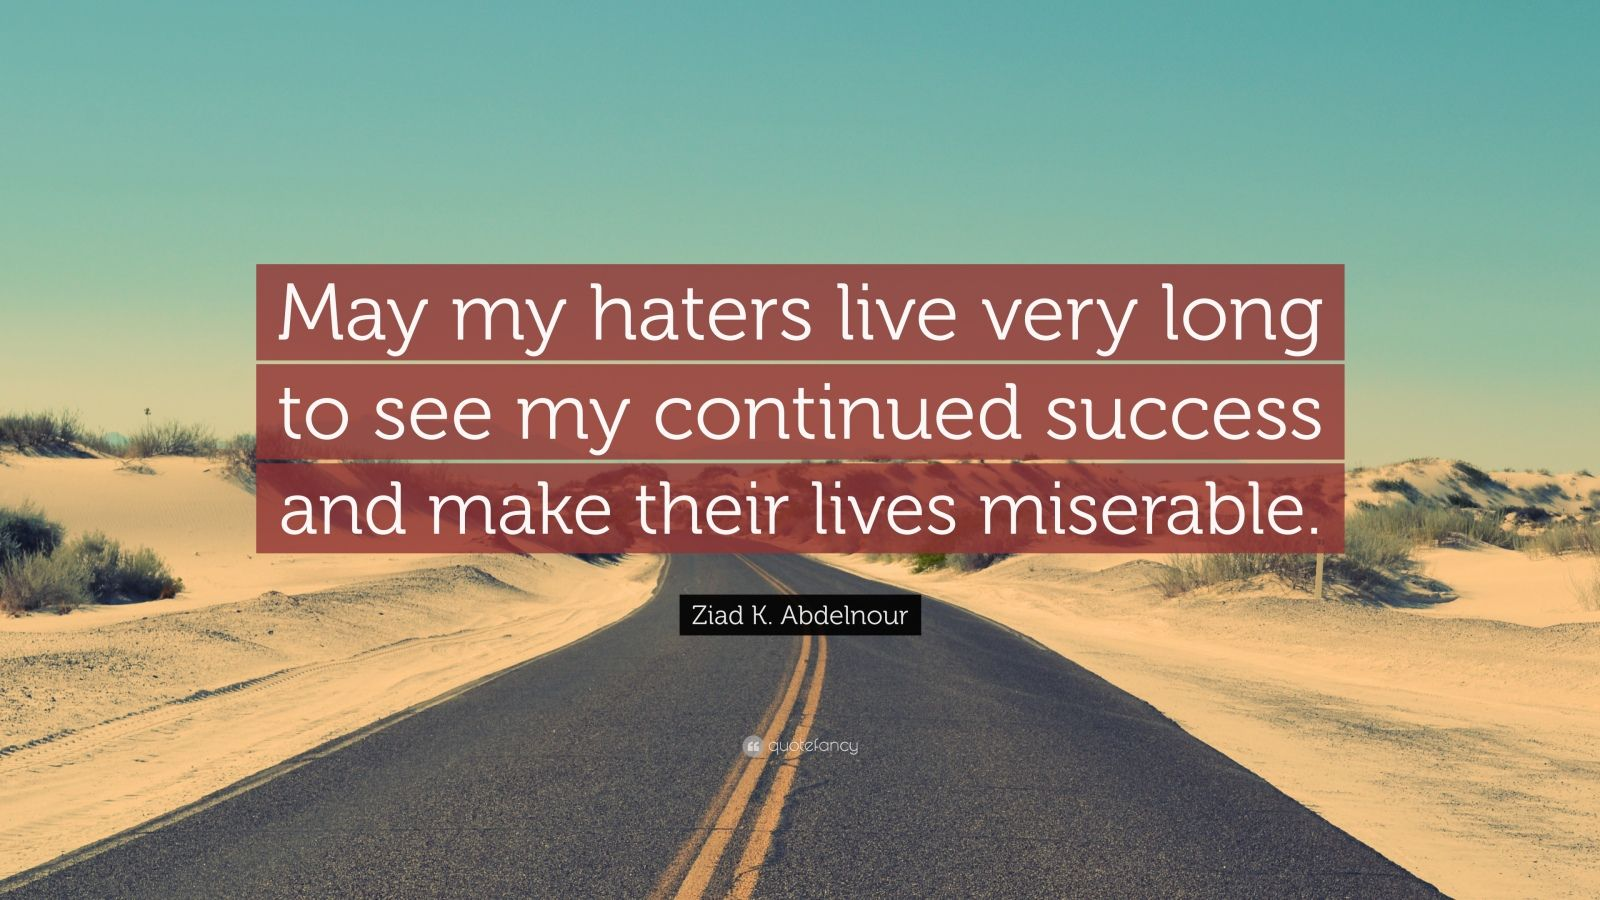 """Ziad K. Abdelnour Quote: """"May my haters live very long to see my continued success and make their lives miserable."""""""